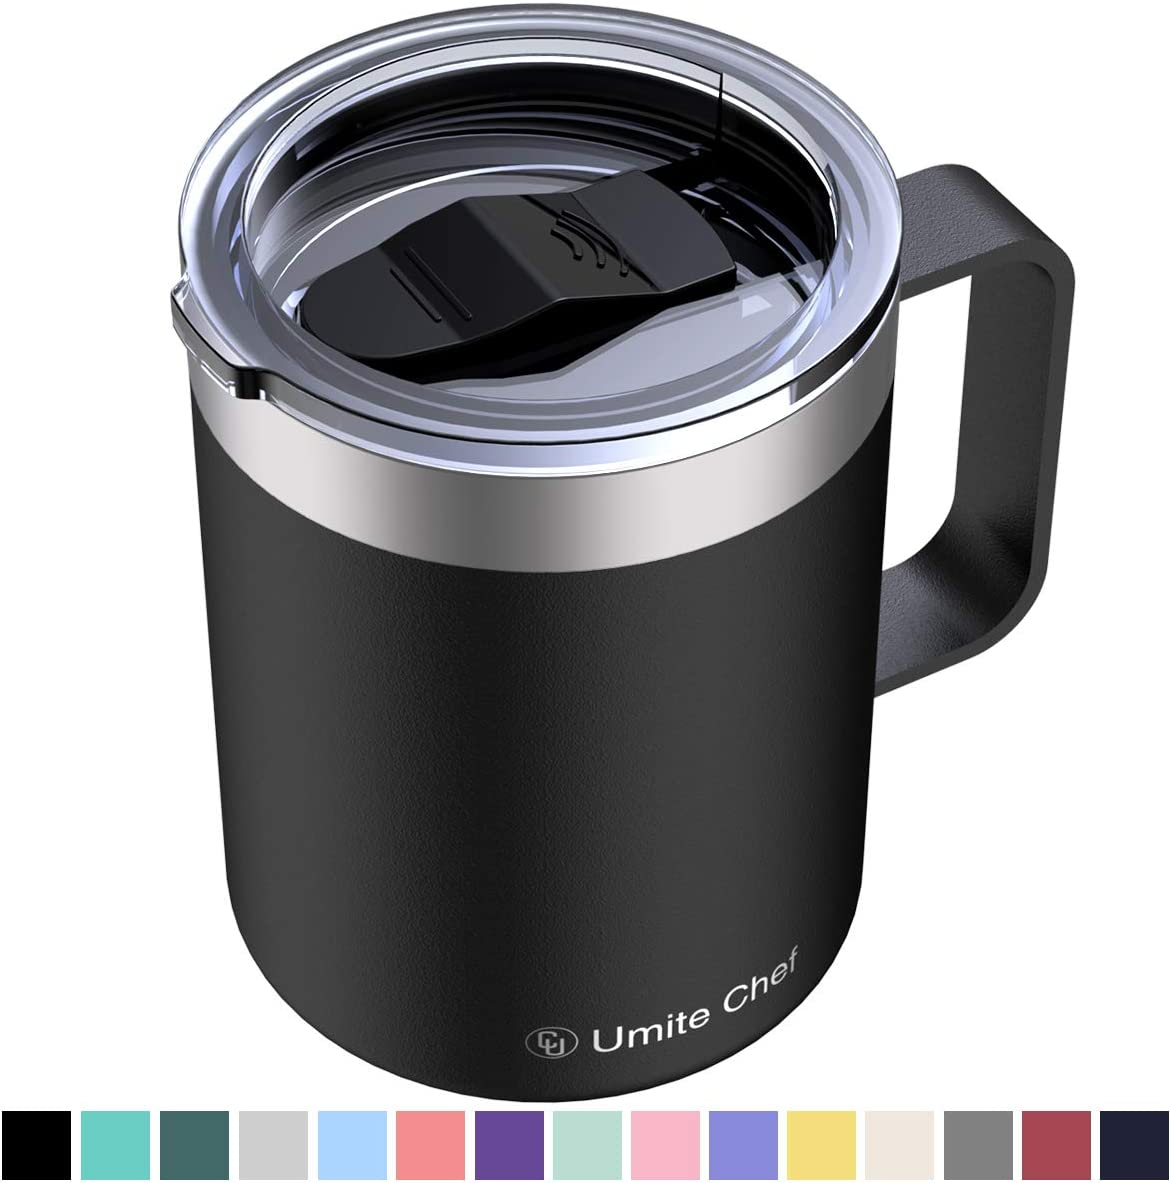 Umite Chef Stainless Steel Insulated Coffee Mug Tumbler with Handle, 12 oz Double Wall Vacuum Tumbler Cup with Lid Insulated Camping Tea Flask for Hot & Cold Drinks(Black)